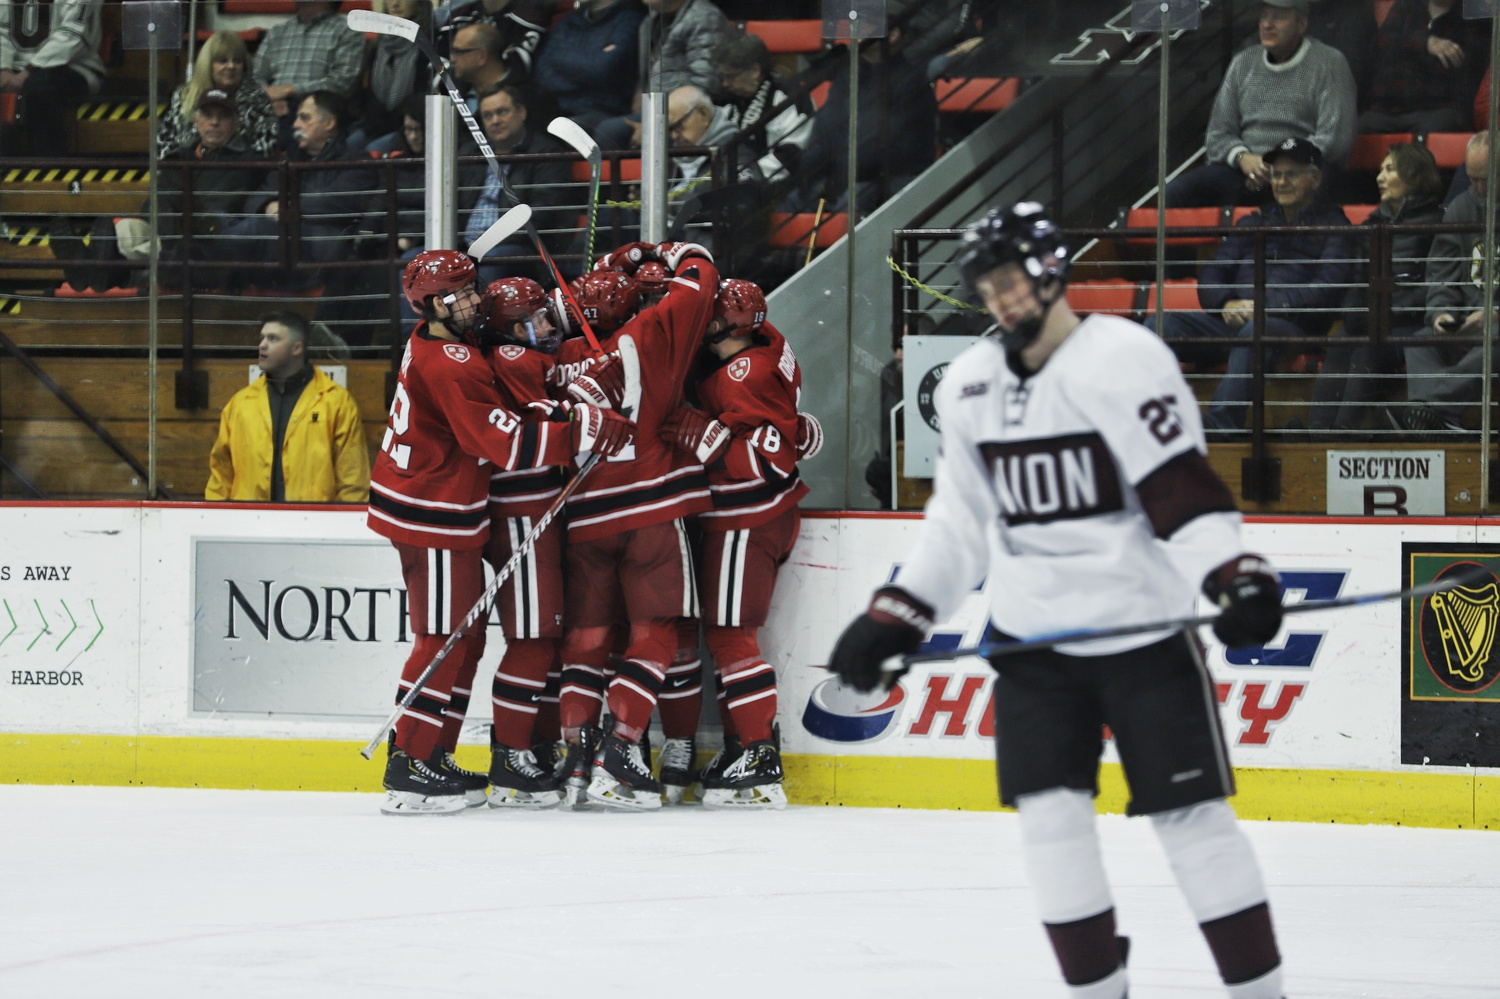 The Crimson scored a season-high eight goals in Friday night's clash at Union's barn.